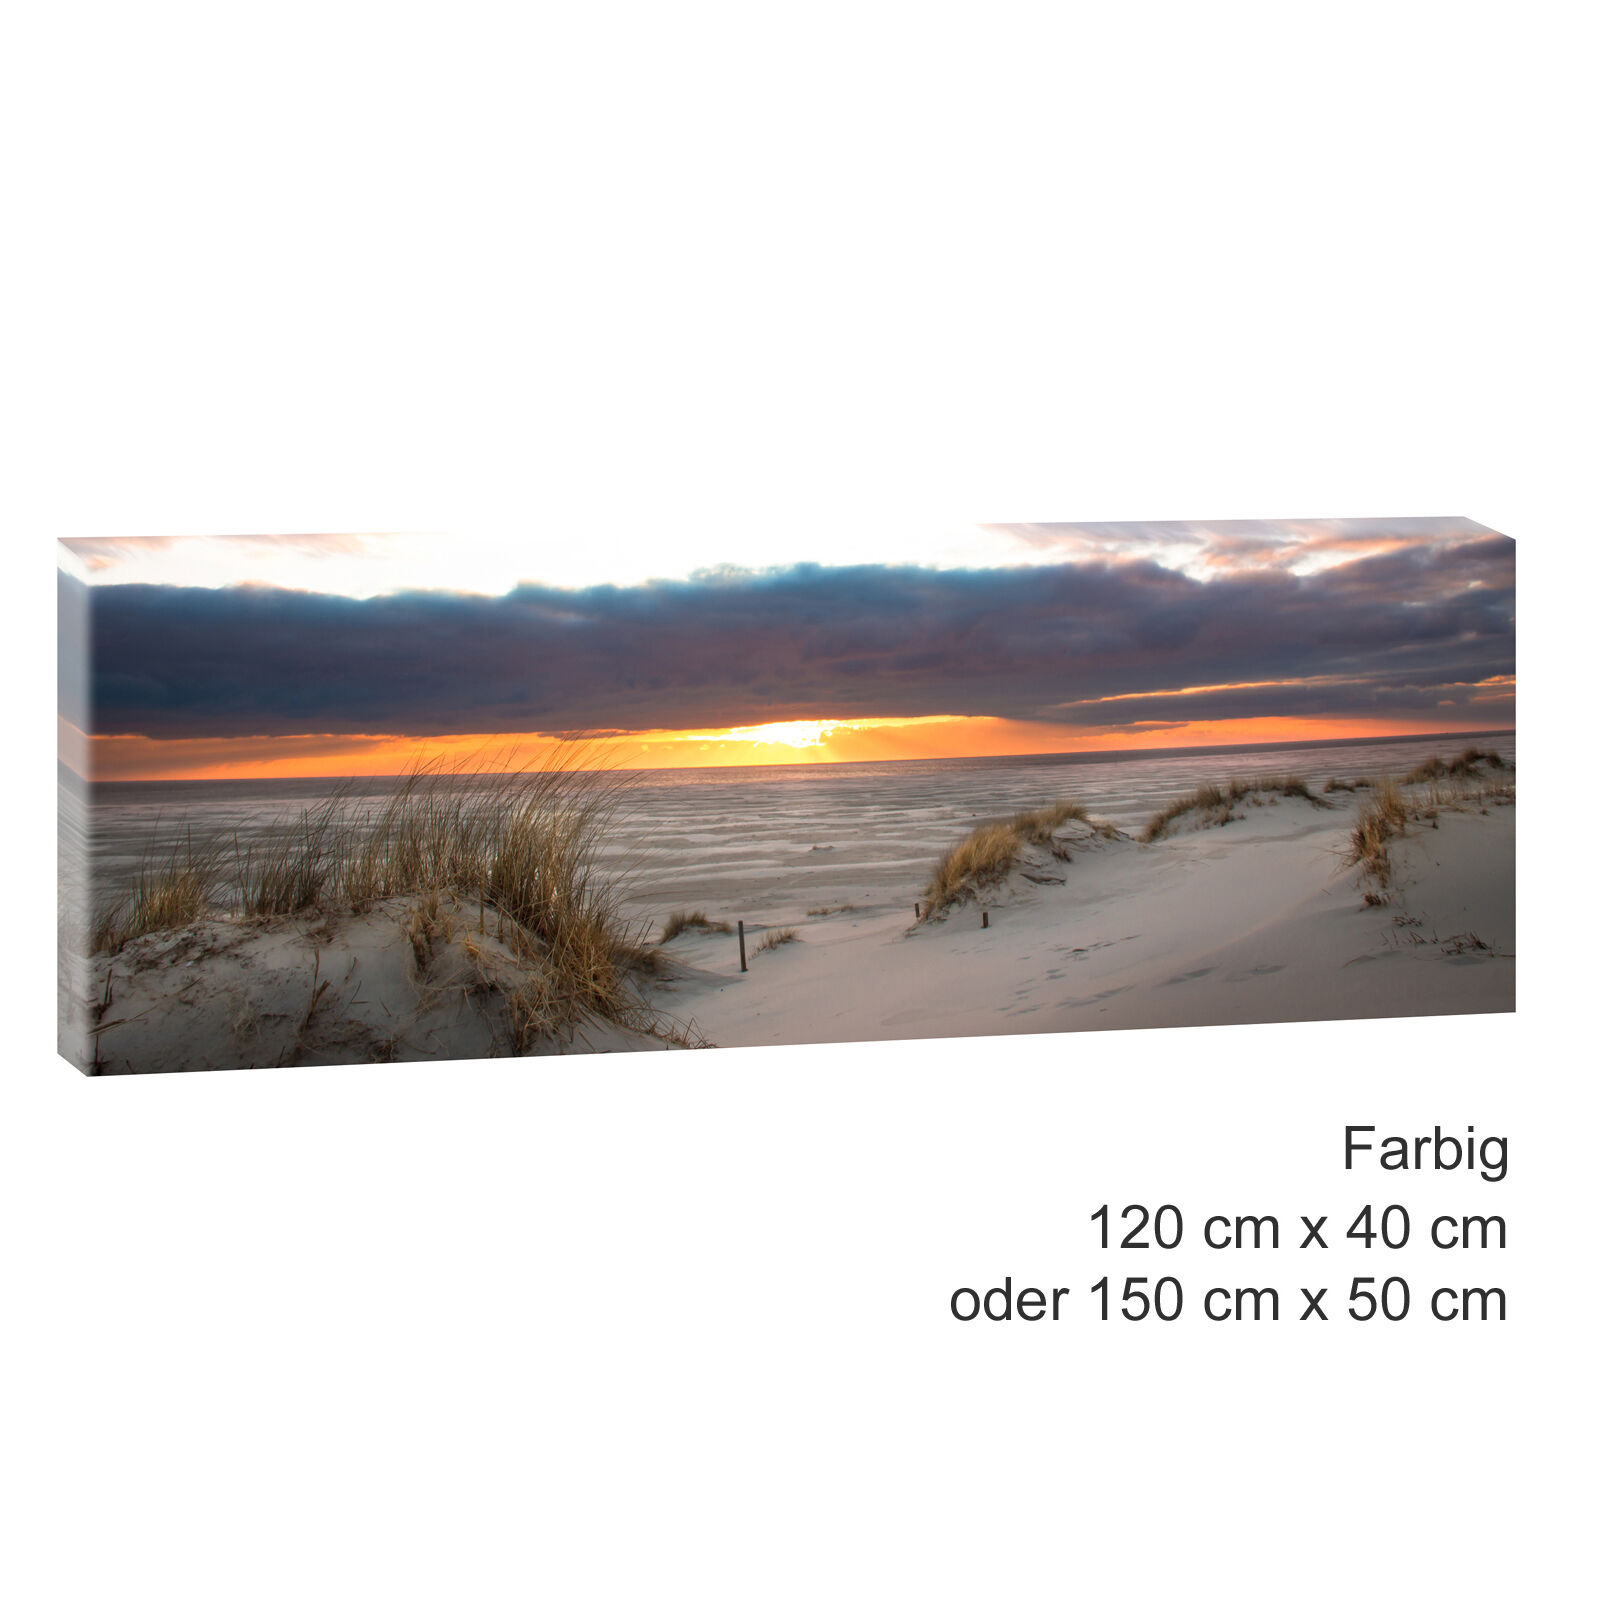 sonnenuntergang bild strand meer keilrahmen leinwand poster xxl 120 cm 40 cm 483 eur 24 50. Black Bedroom Furniture Sets. Home Design Ideas